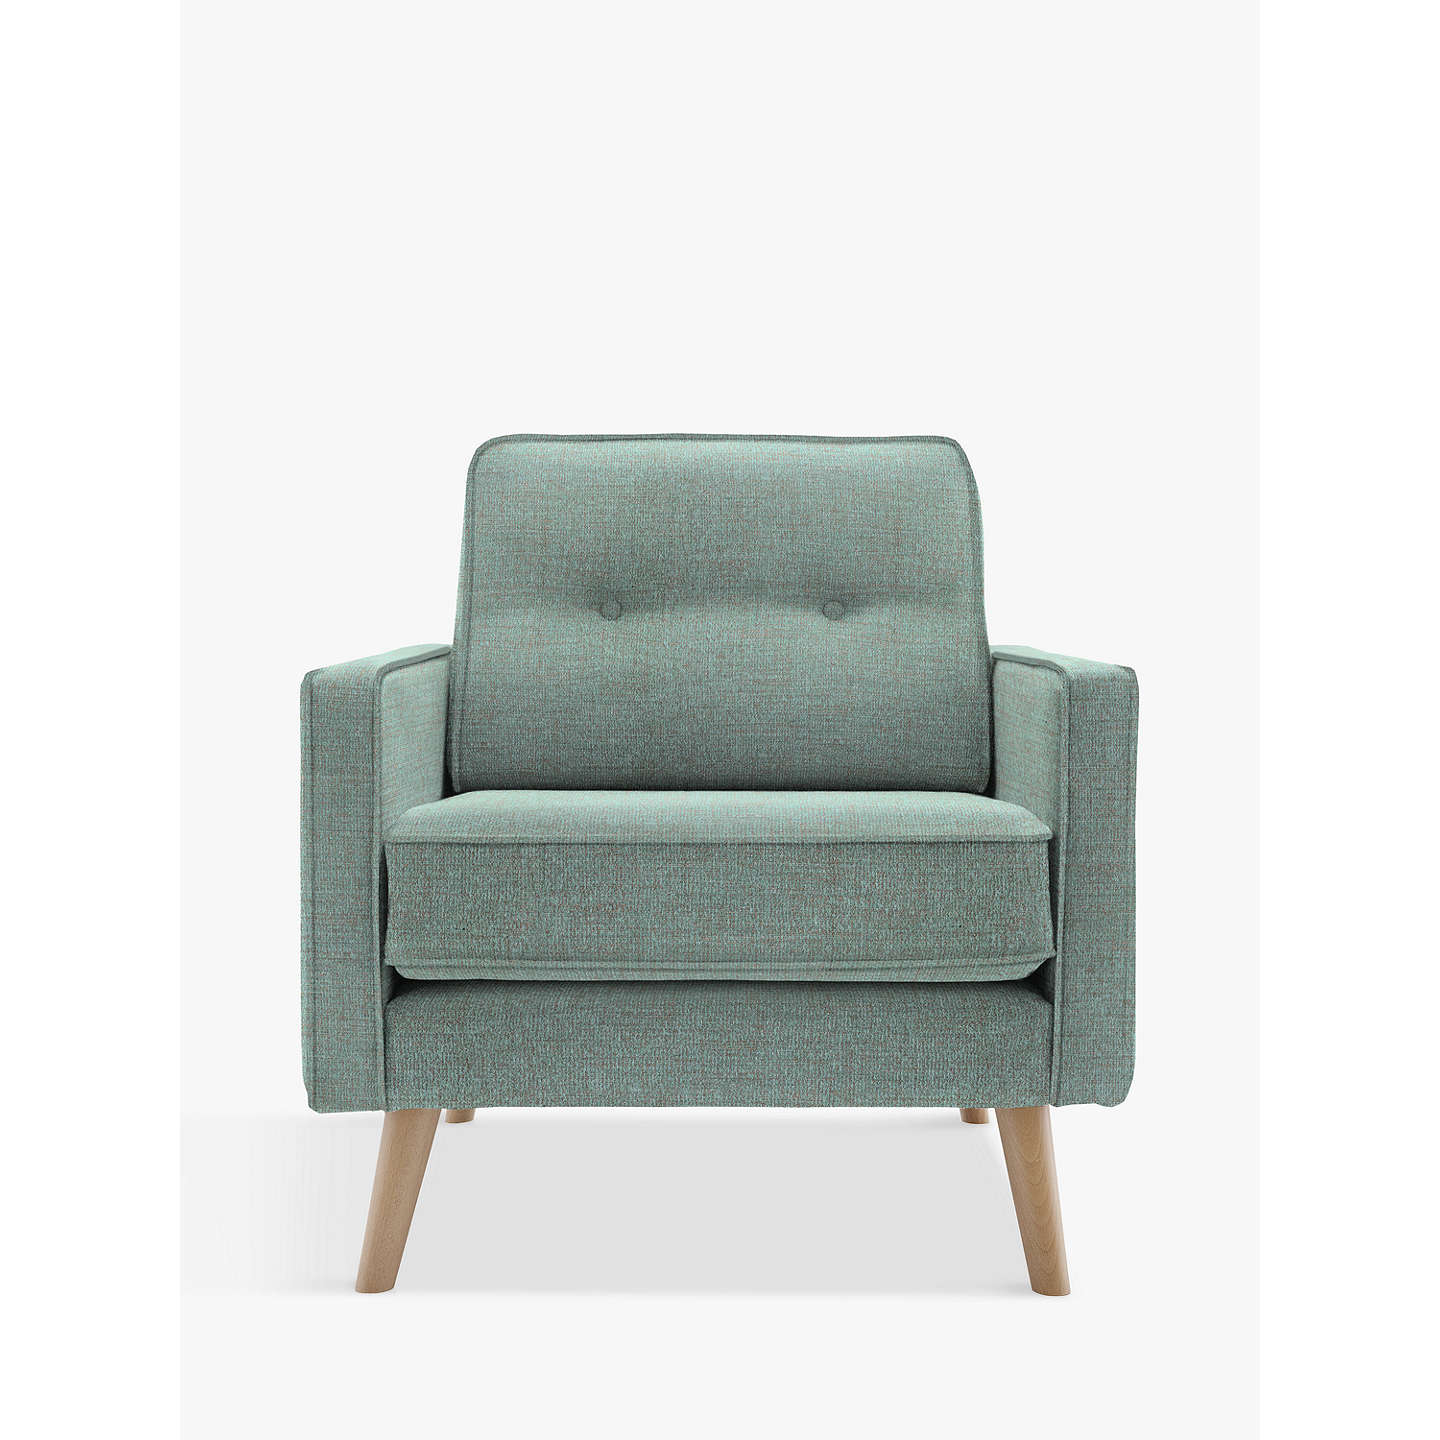 G Plan Vintage The Sixty Five Armchair At John Lewis